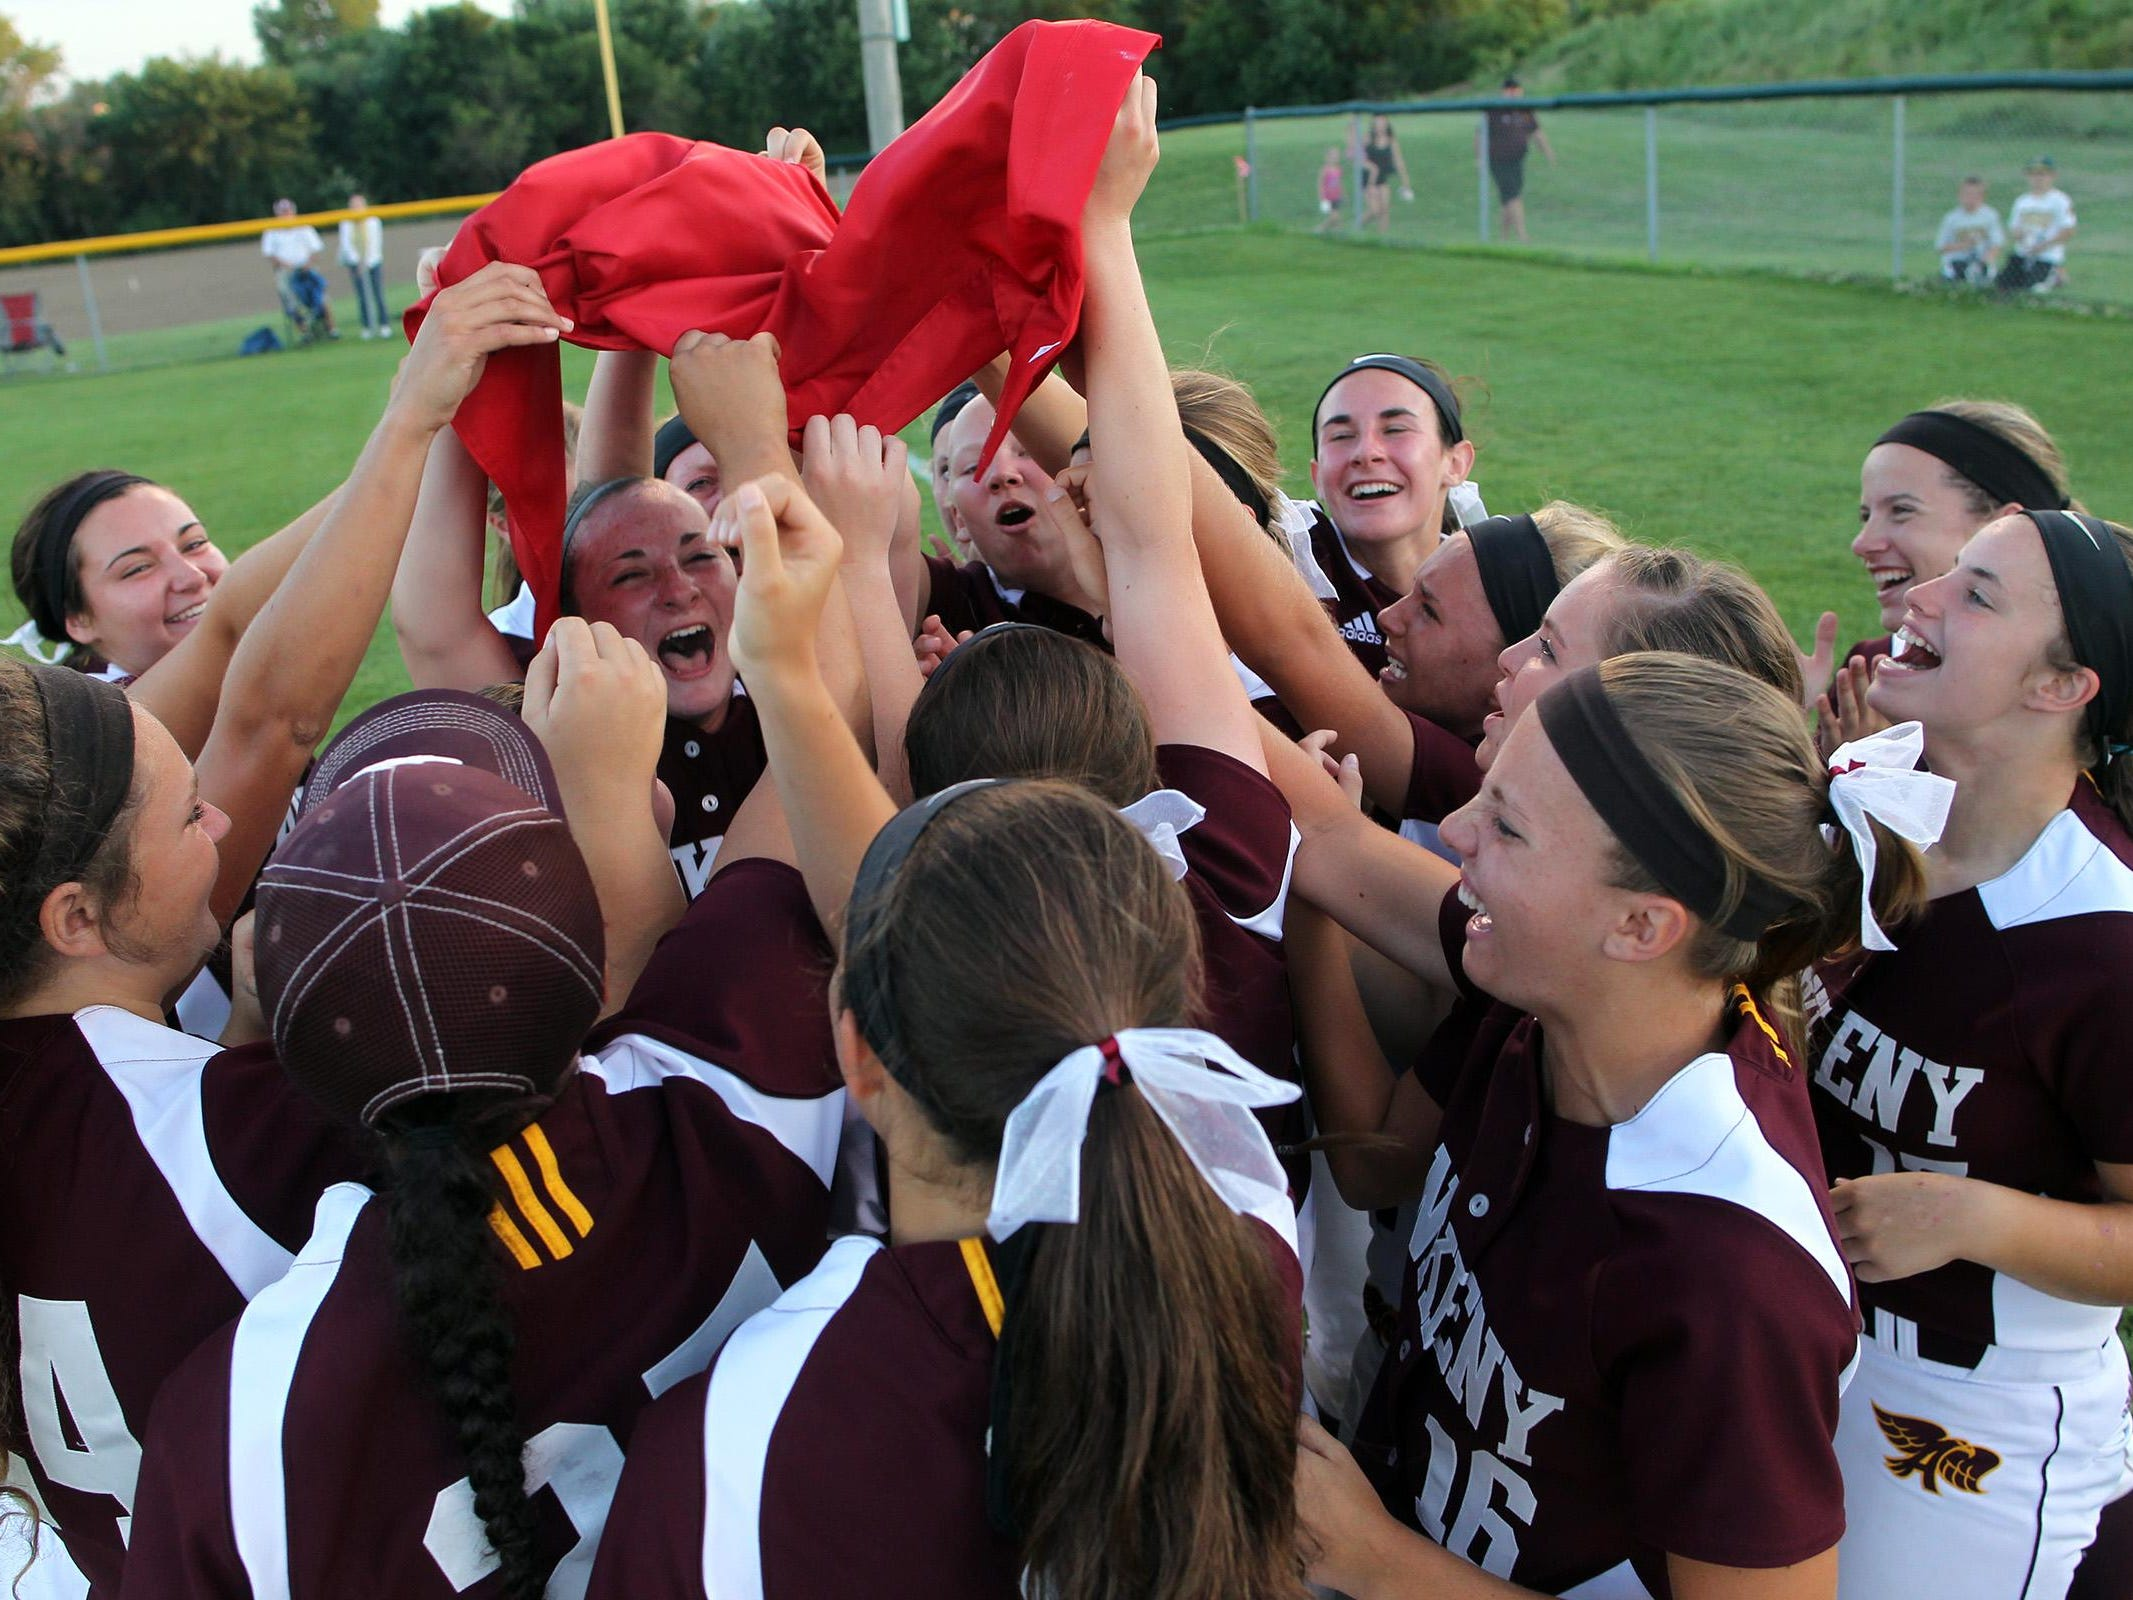 Ankeny teammates celebrate their Class 5A regional championship over West High on Tuesday, July 14, 2015. Ankeny won, 3-1, to head to state. David Scrivner / Iowa City Press-Citizen